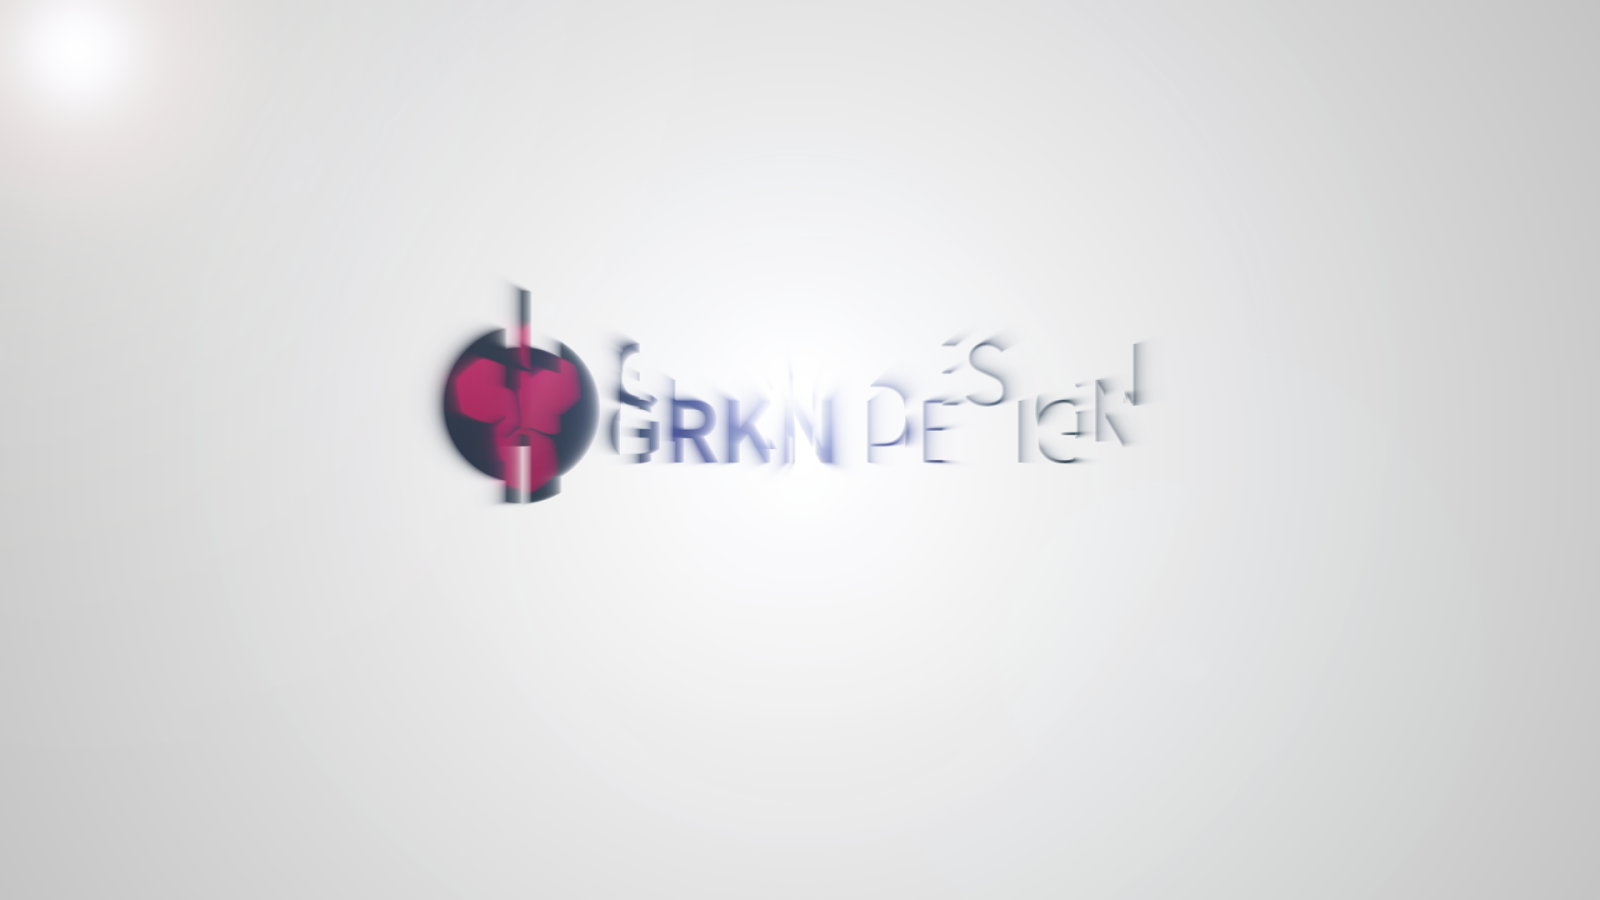 After Effects Templates Free Download Zip Ae Grkn Design